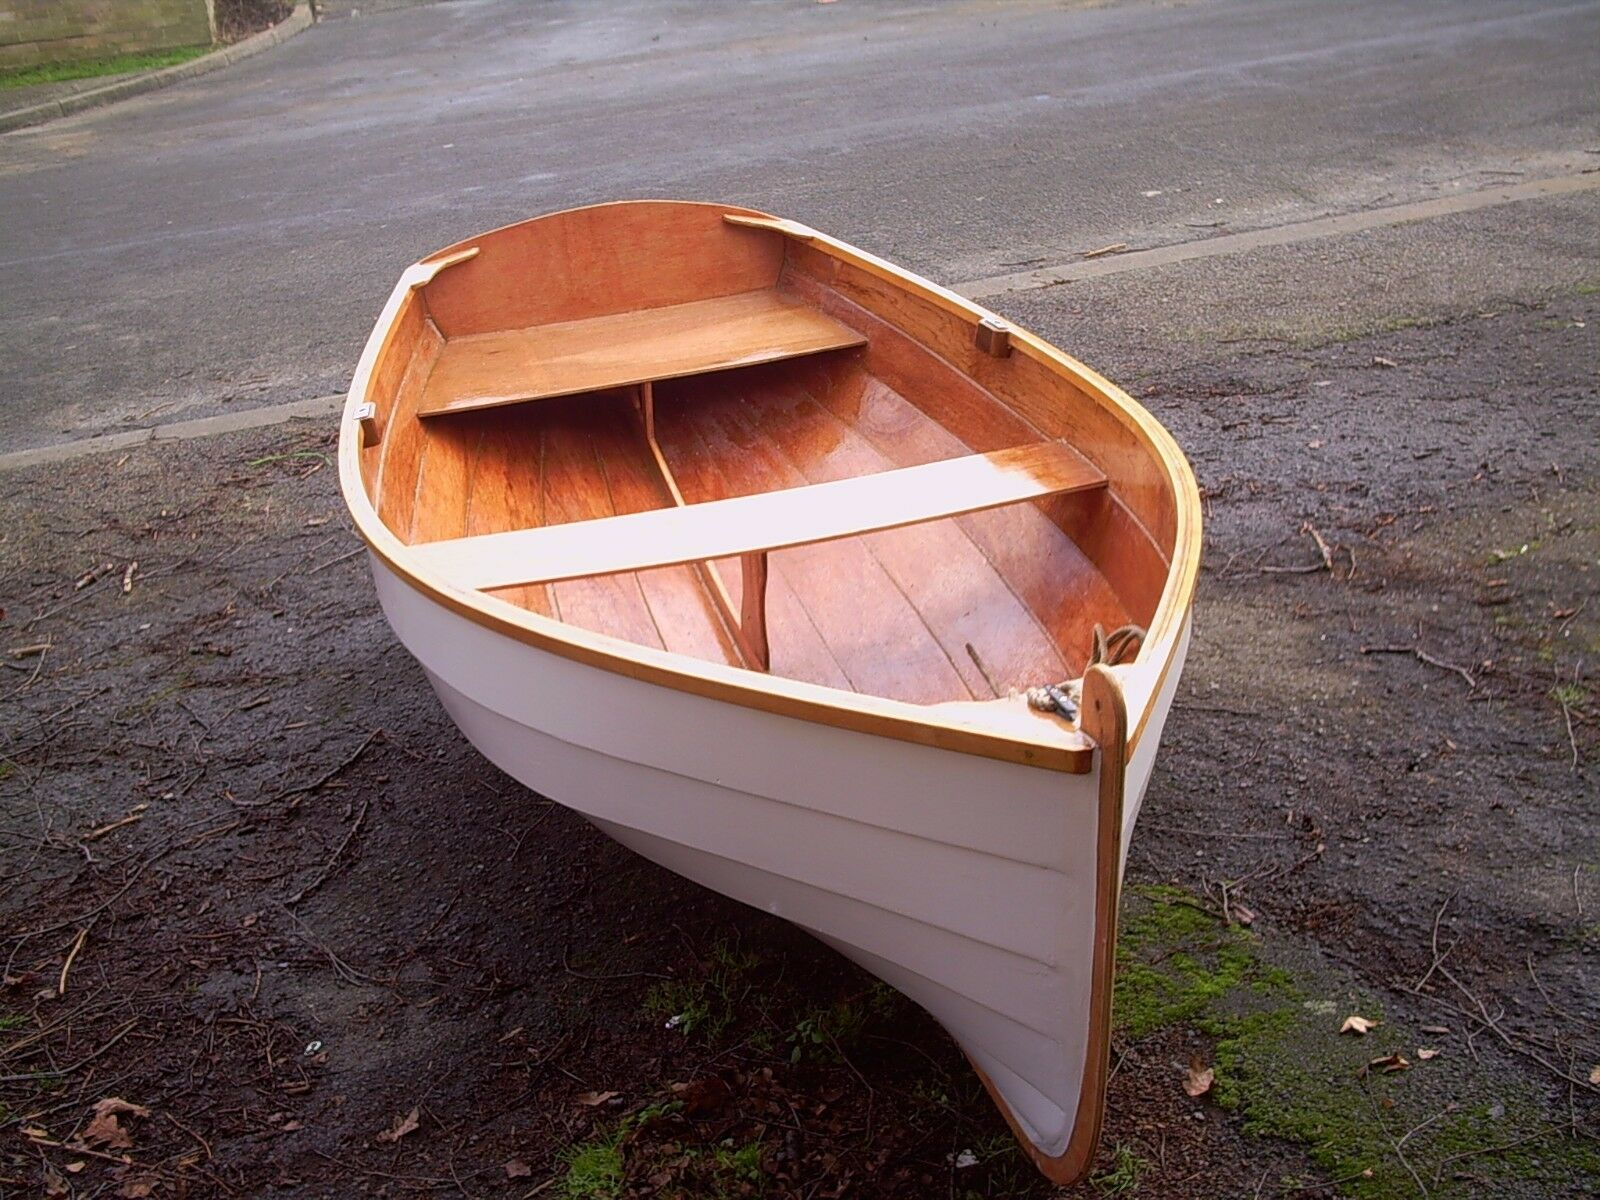 DIY Plans for WINCHELSEA 8 Row Motor Sail Dinghy - Full Size Patterns